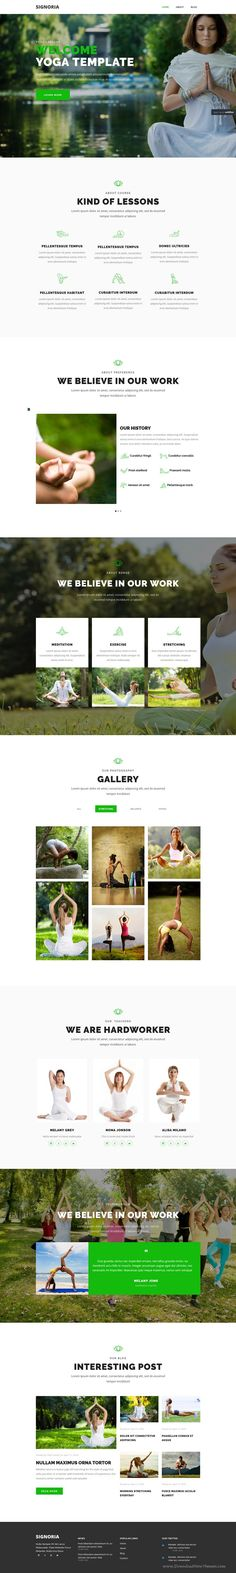 Signoria is clean, soft and modern #WebFlow template for #yoga and #meditation…